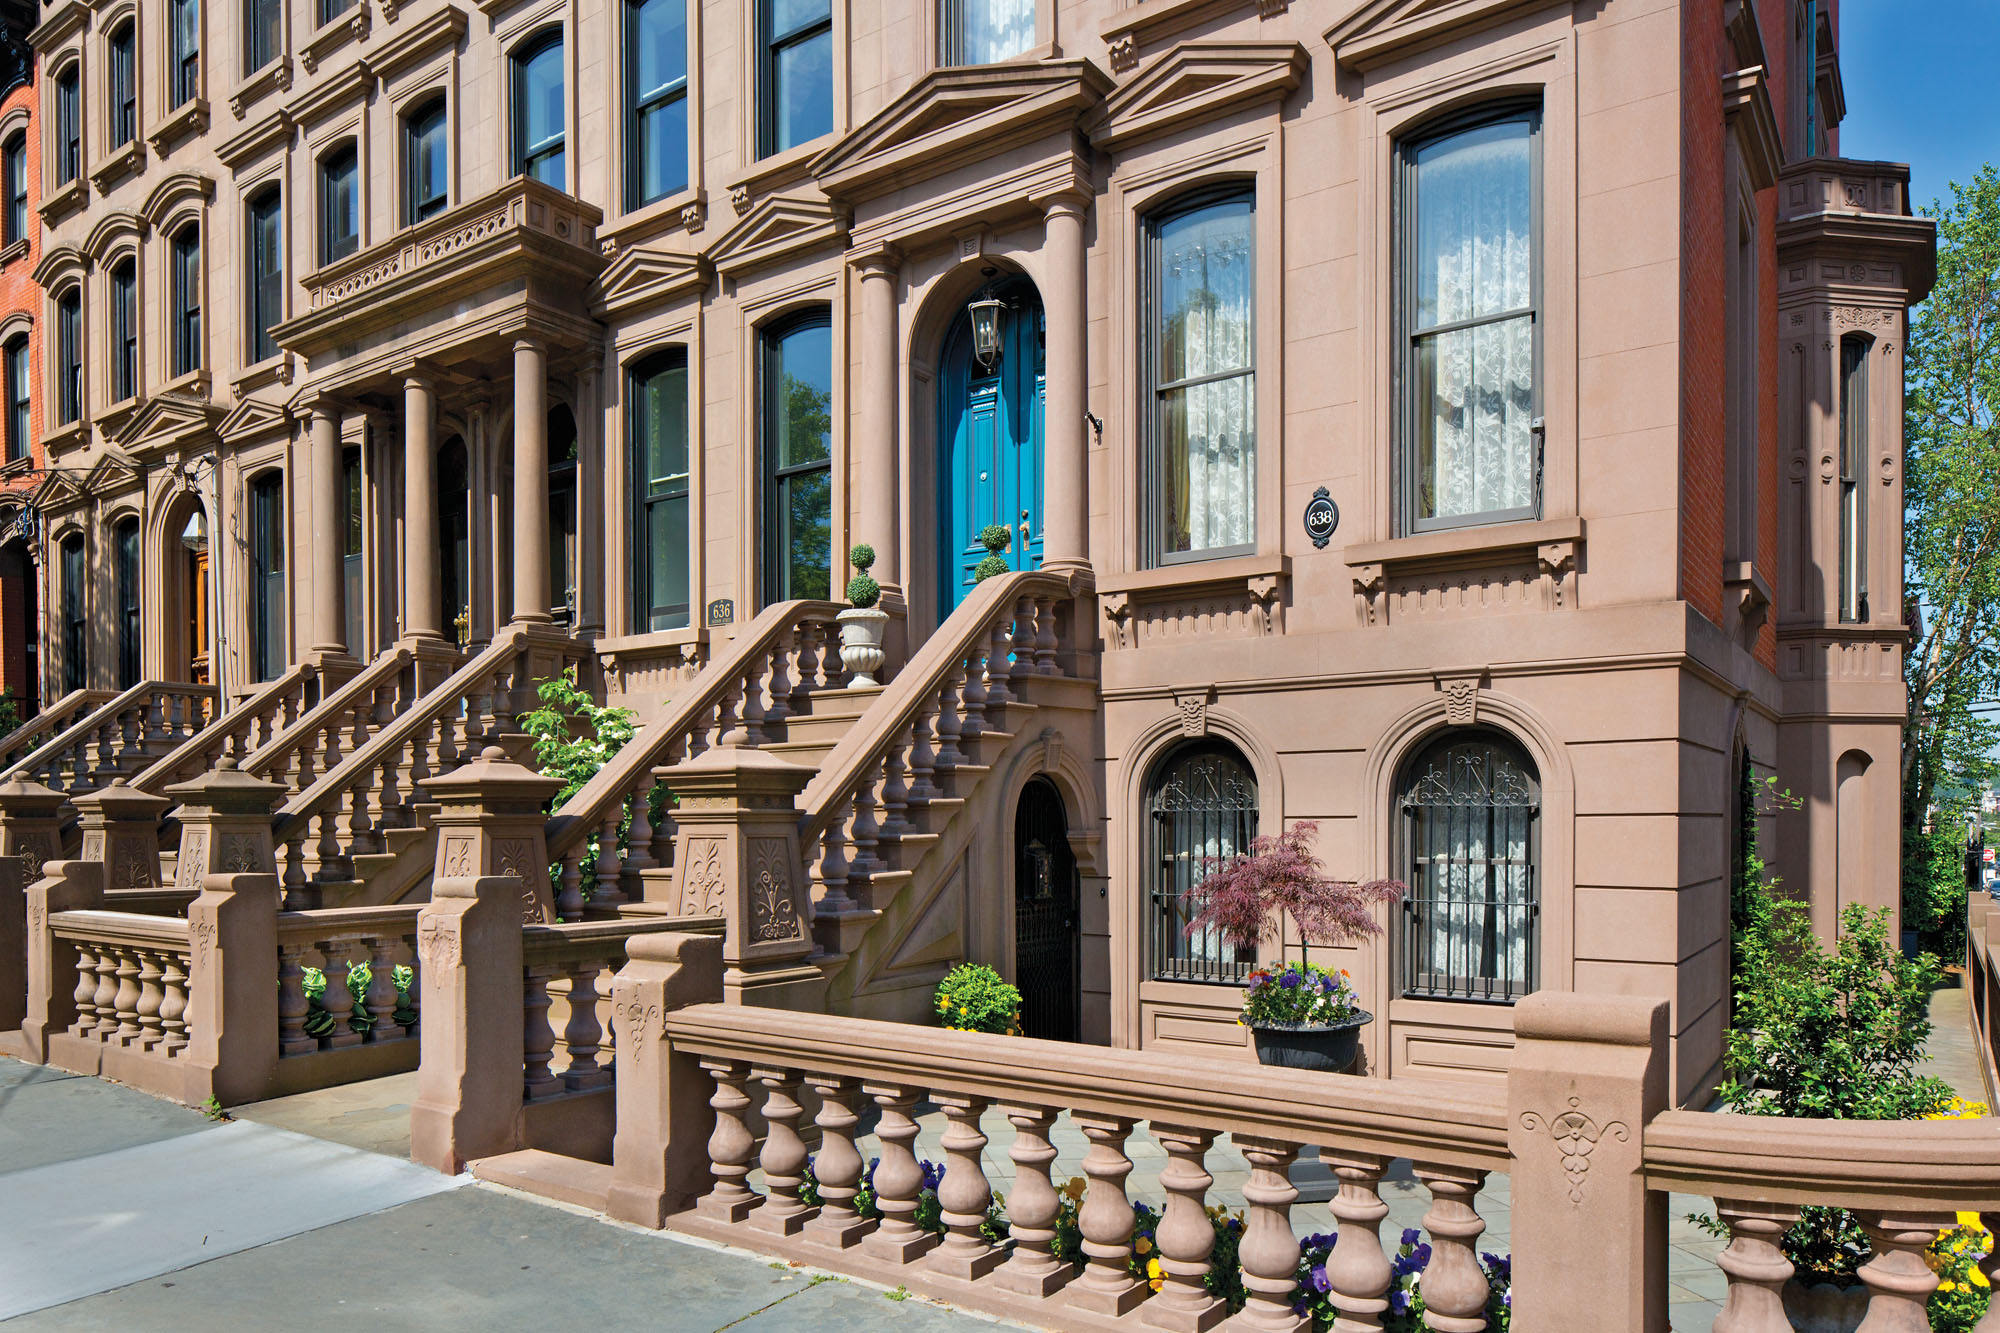 Brownstone balustrades